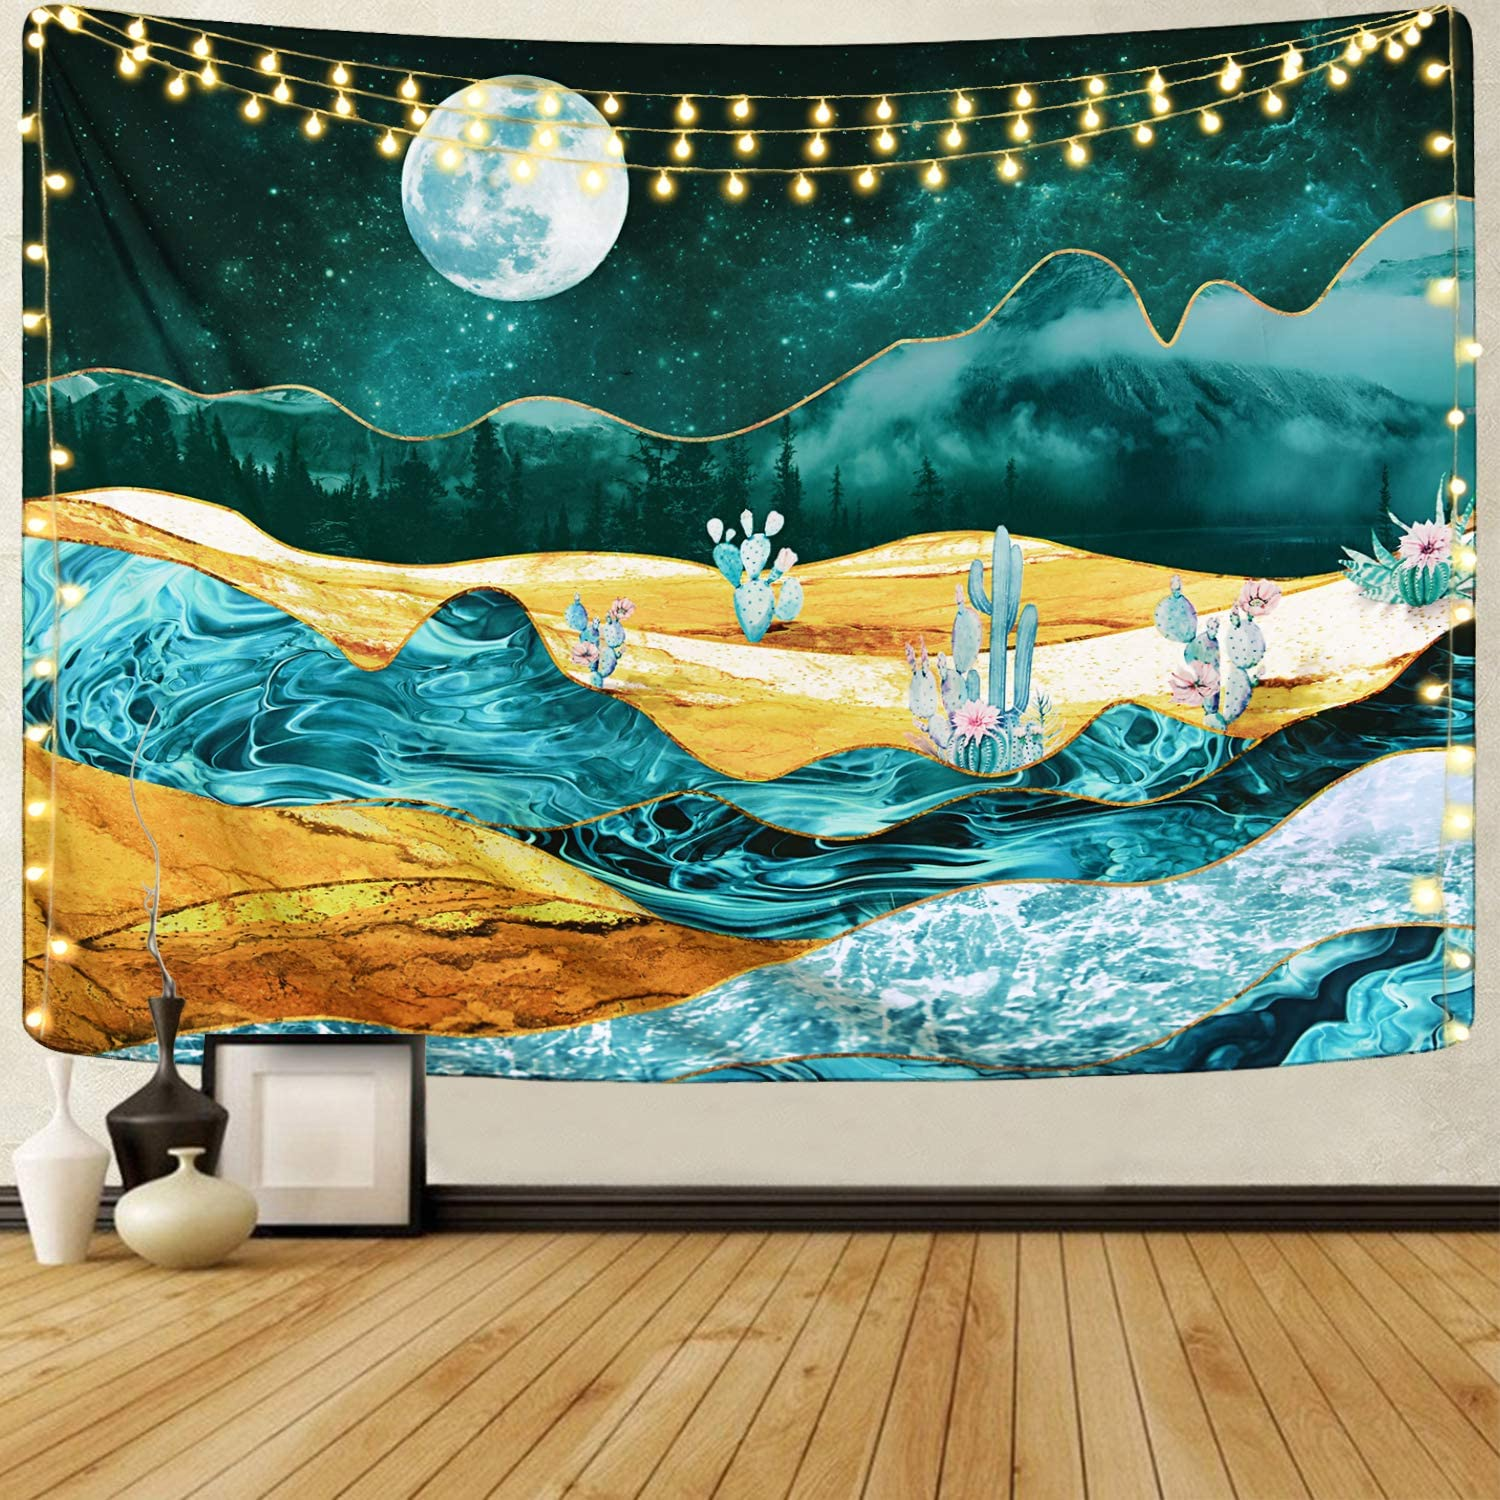 Alishomtll Cactus and Moon Tapestry Desert Mountain Tapestry Forest Nature Landscape Tapestry Tree Plant Tapestry for Room (51.2 x 59.1 inches)